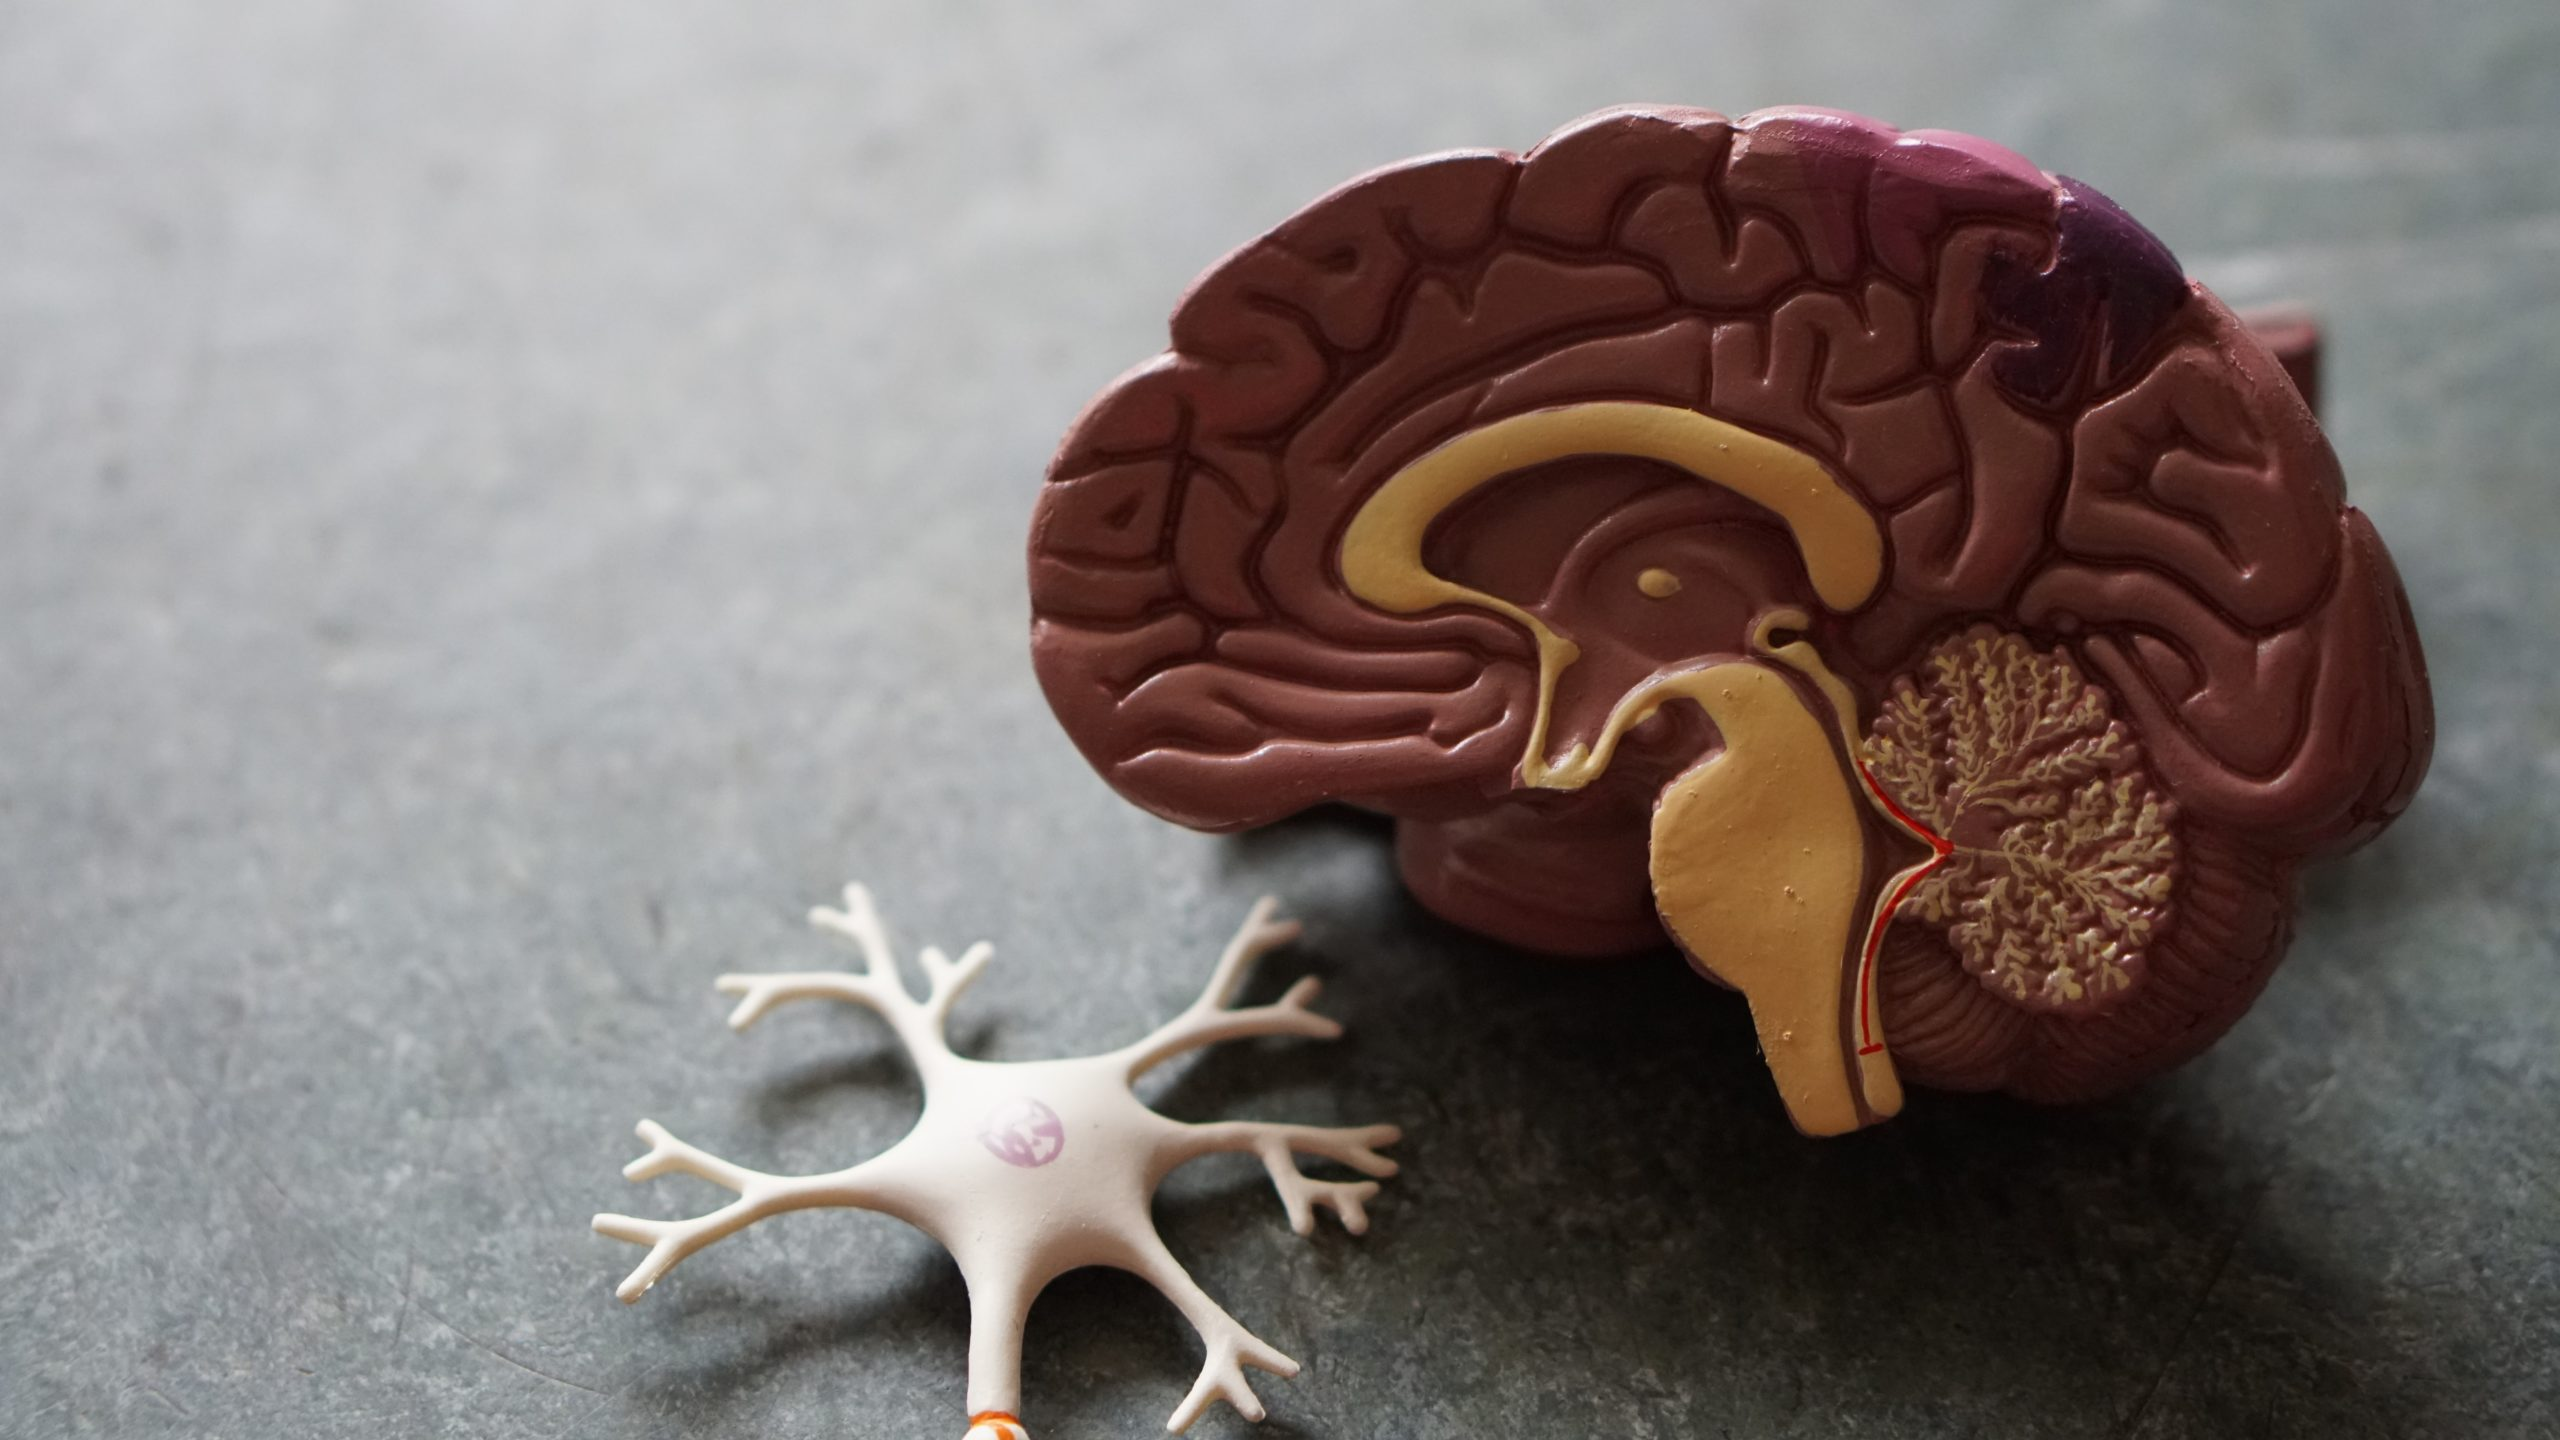 Alzheimer's Disease: Vital Info You Should Know About This Condition